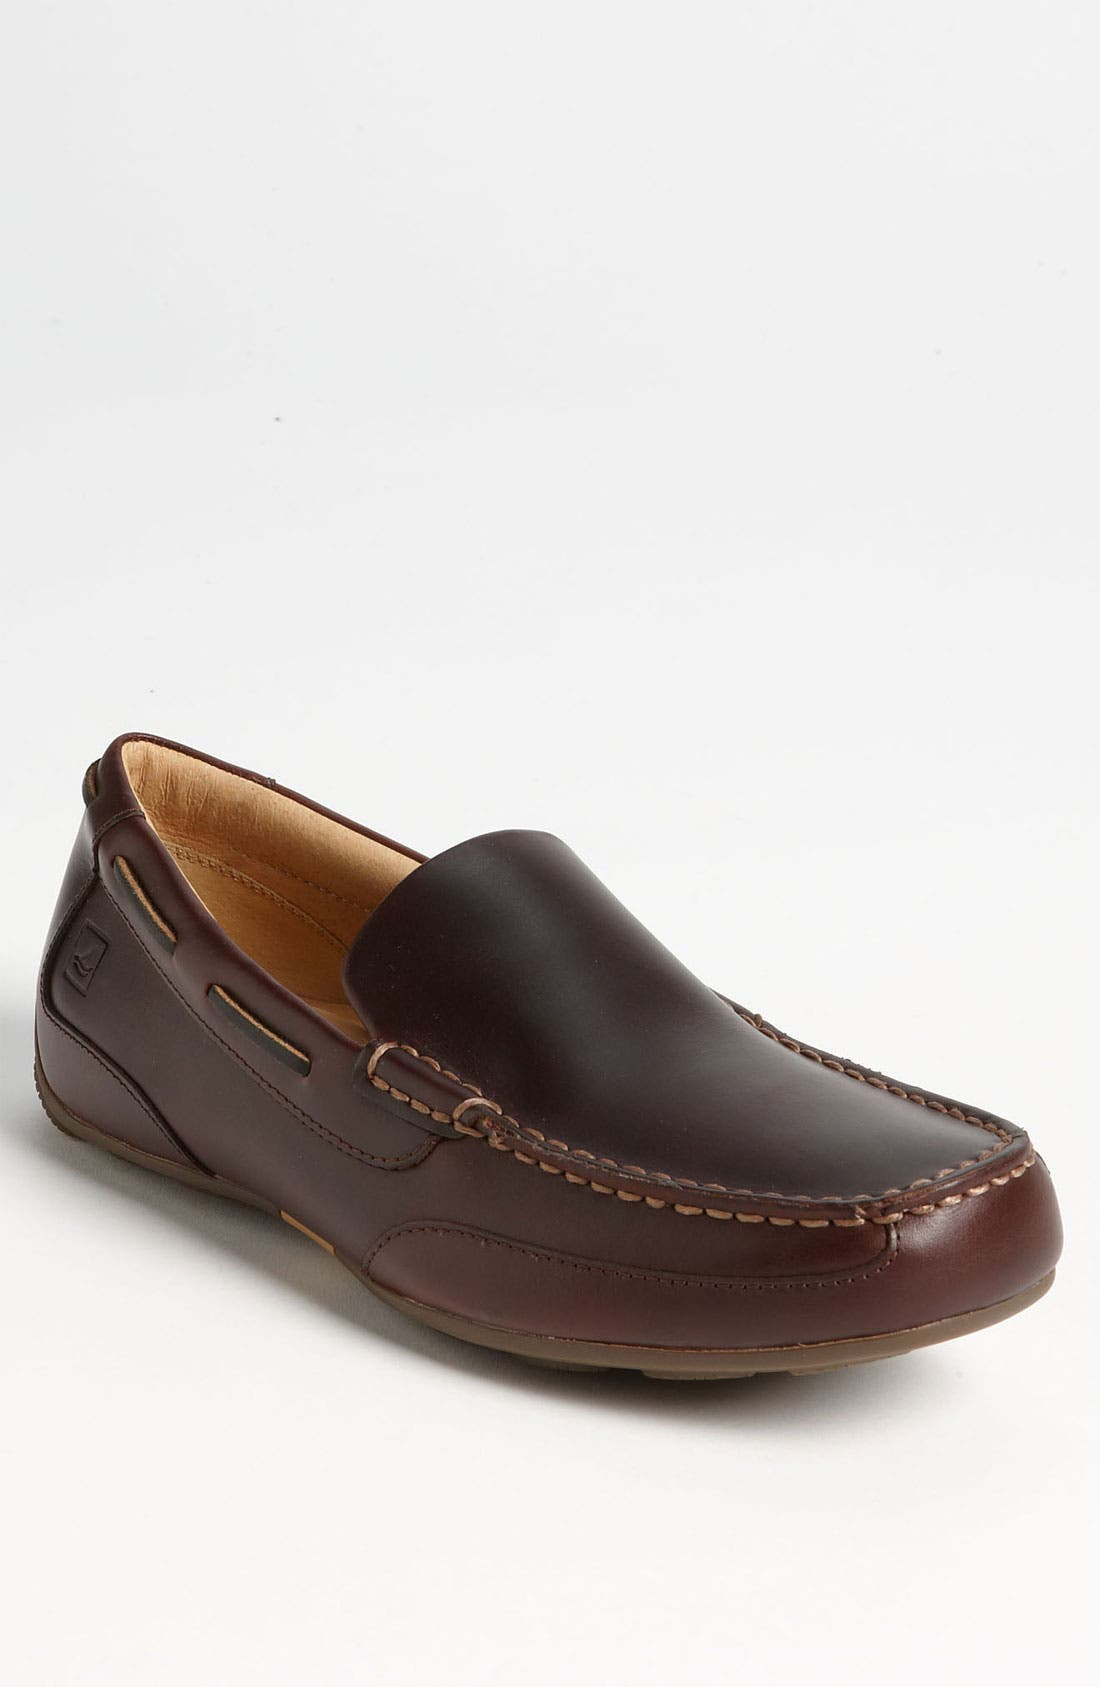 Top-Sider<sup>®</sup> 'Navigator Venetian' Driving Shoe,                         Main,                         color, Amaretto